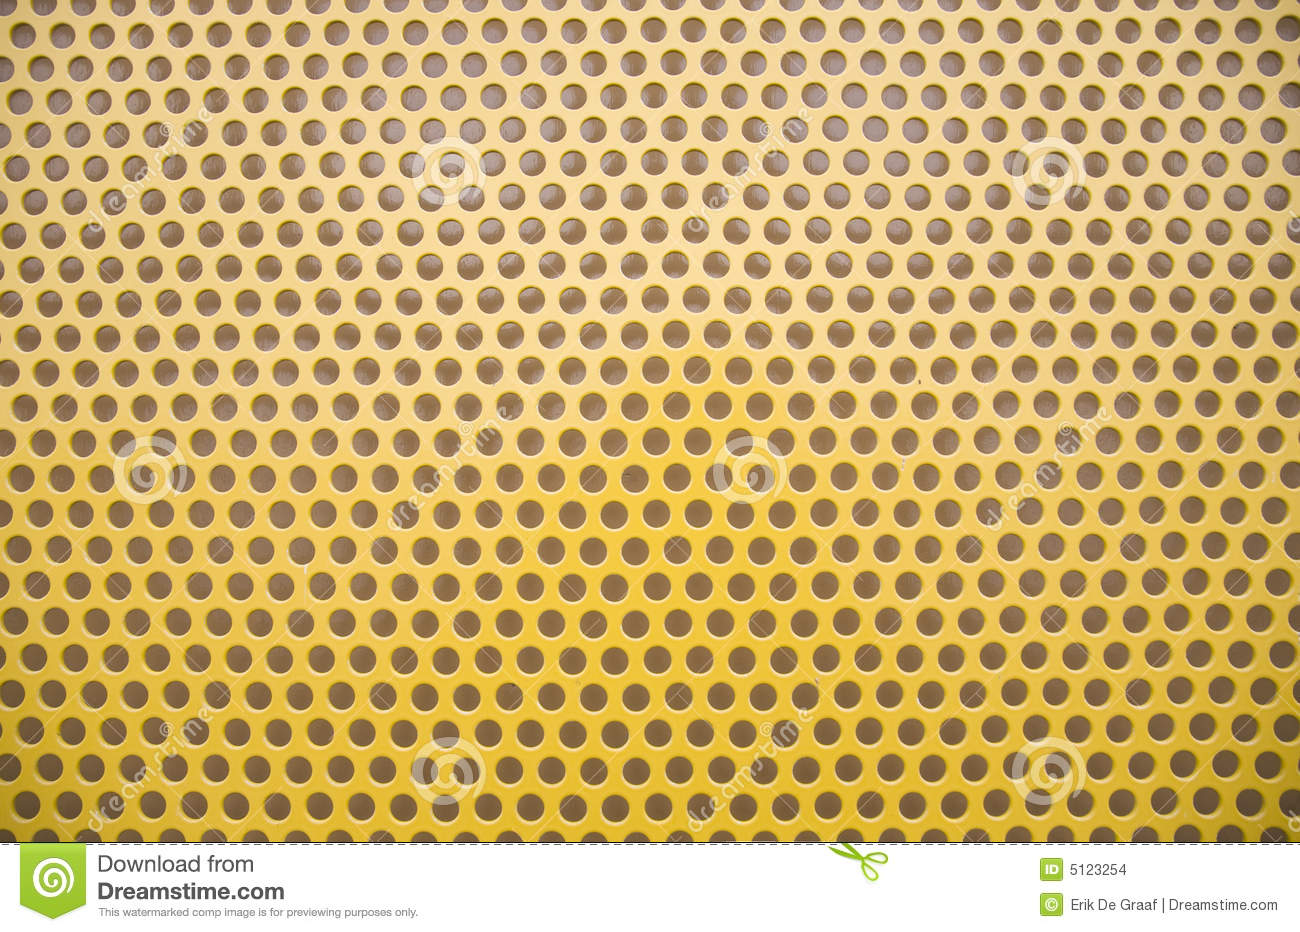 Close up of perforated yellow construction metal.